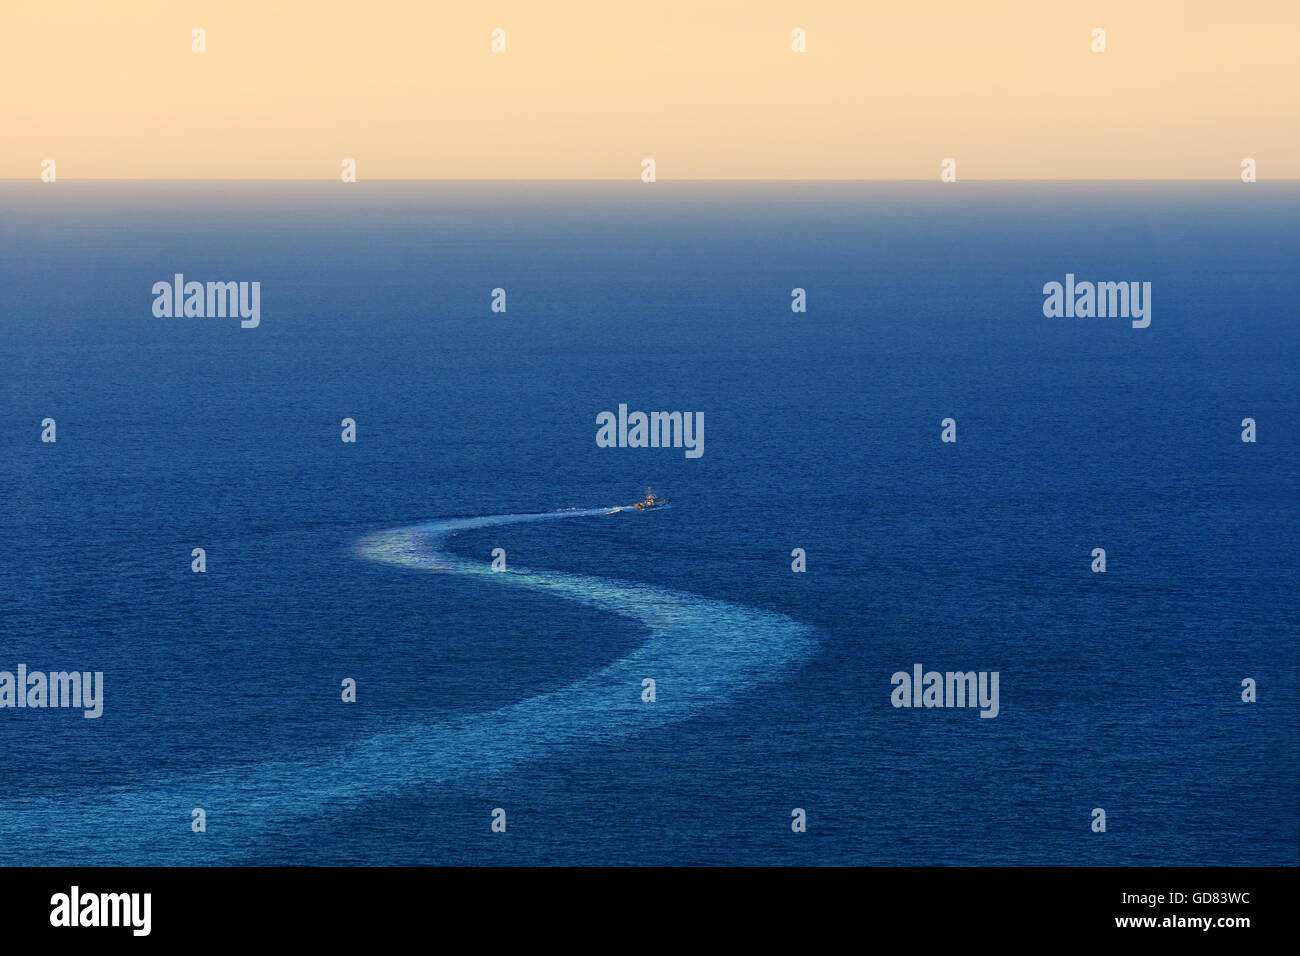 ship trace on the sea - Stock Image